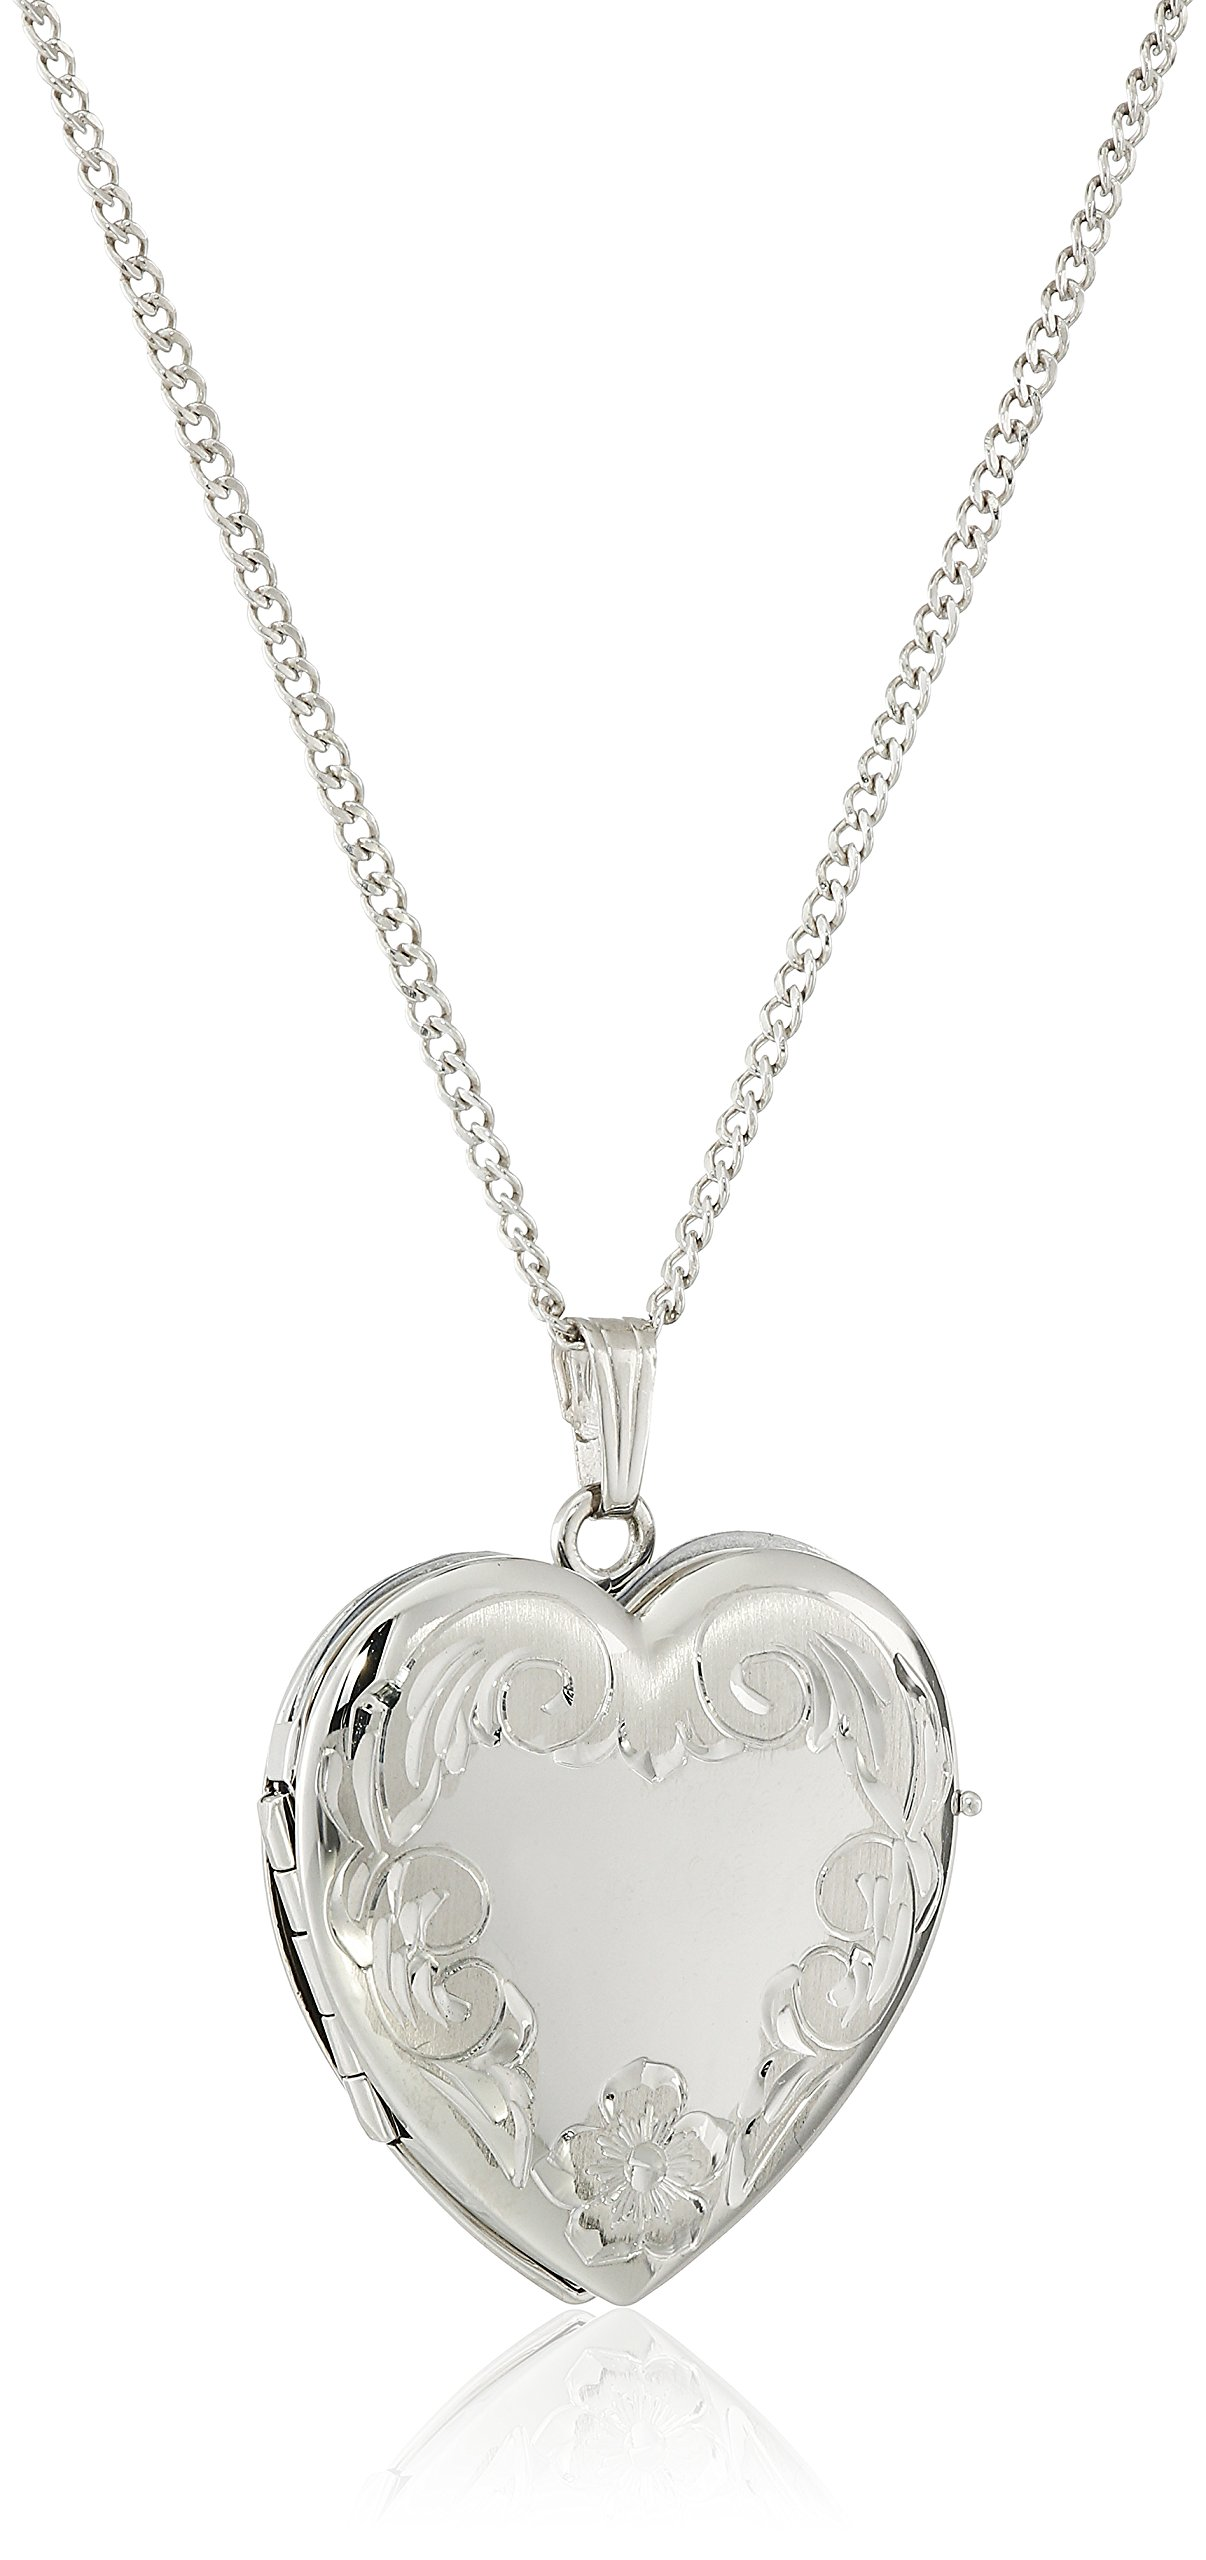 Sterling-Silver-Engraved-Four-Picture-Heart-Locket-Necklace-20